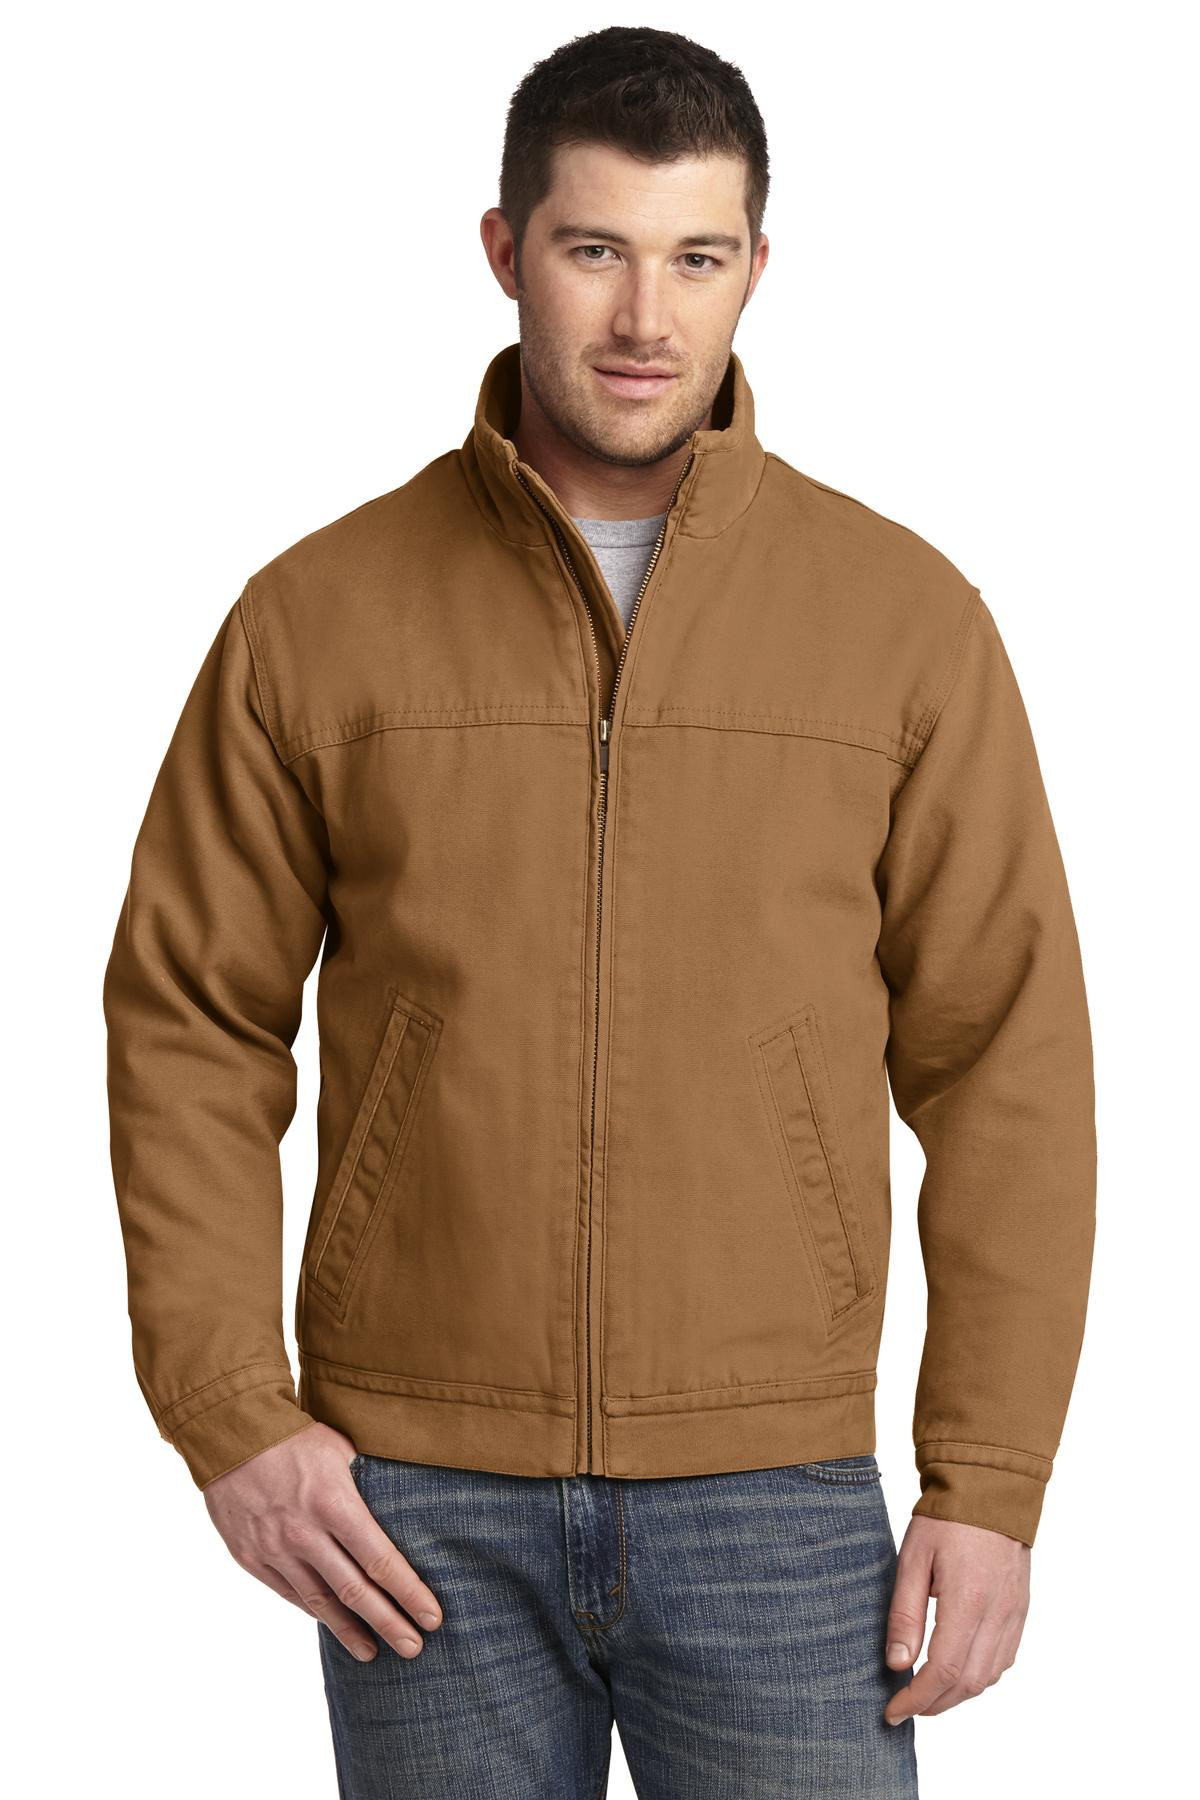 Outerwear-Work-Jackets-2